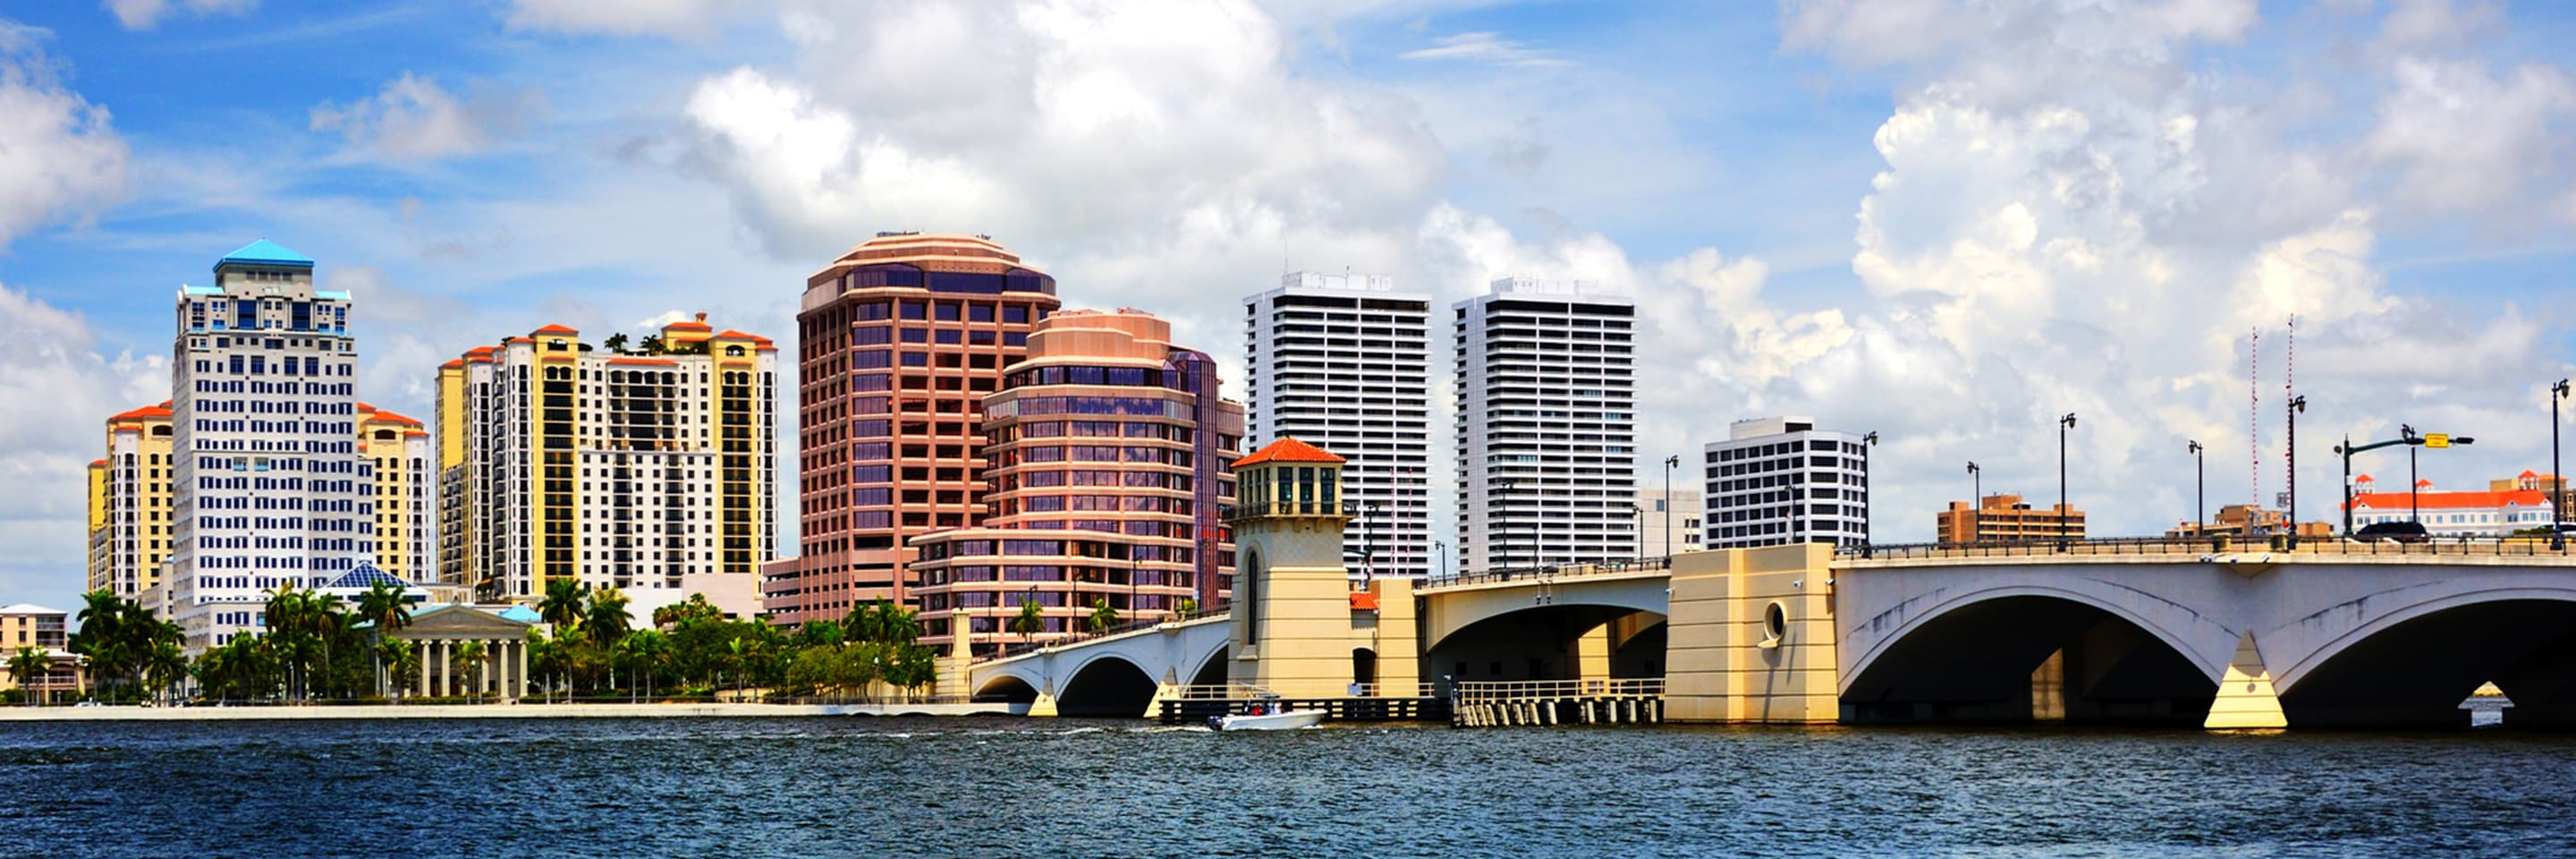 Hotels in West Palm Beach